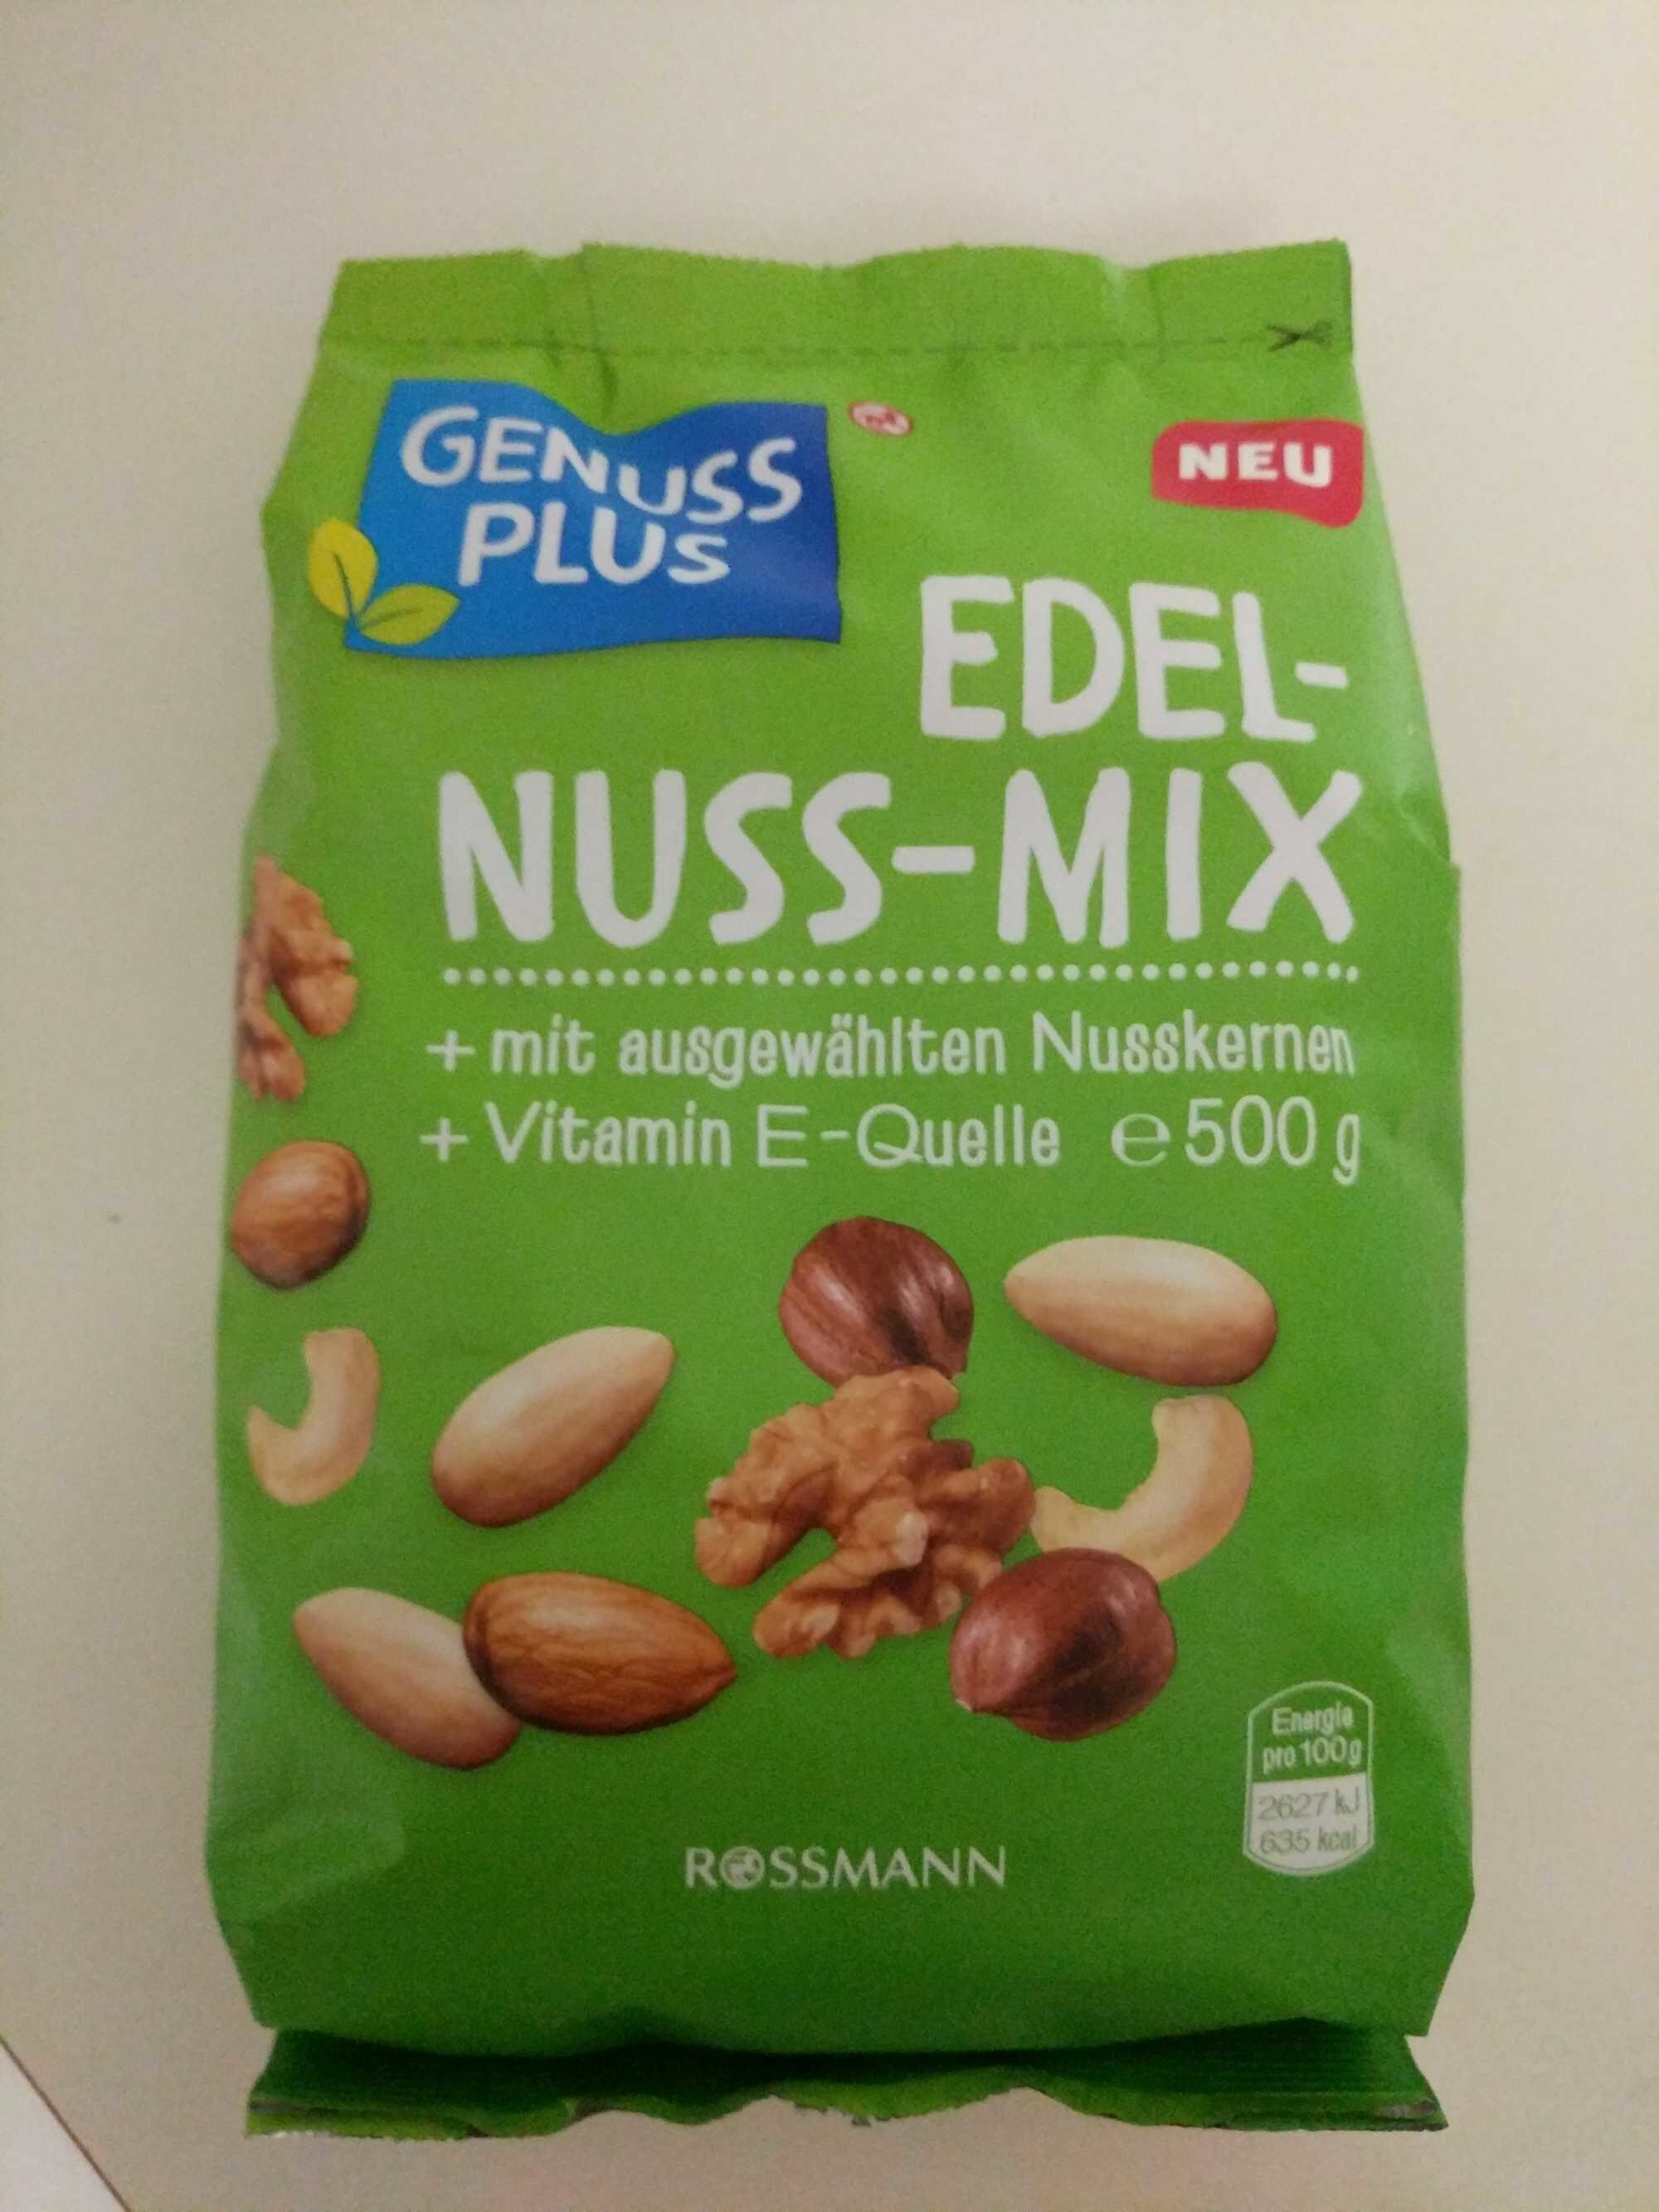 Edel-Nuss-Mix - Product